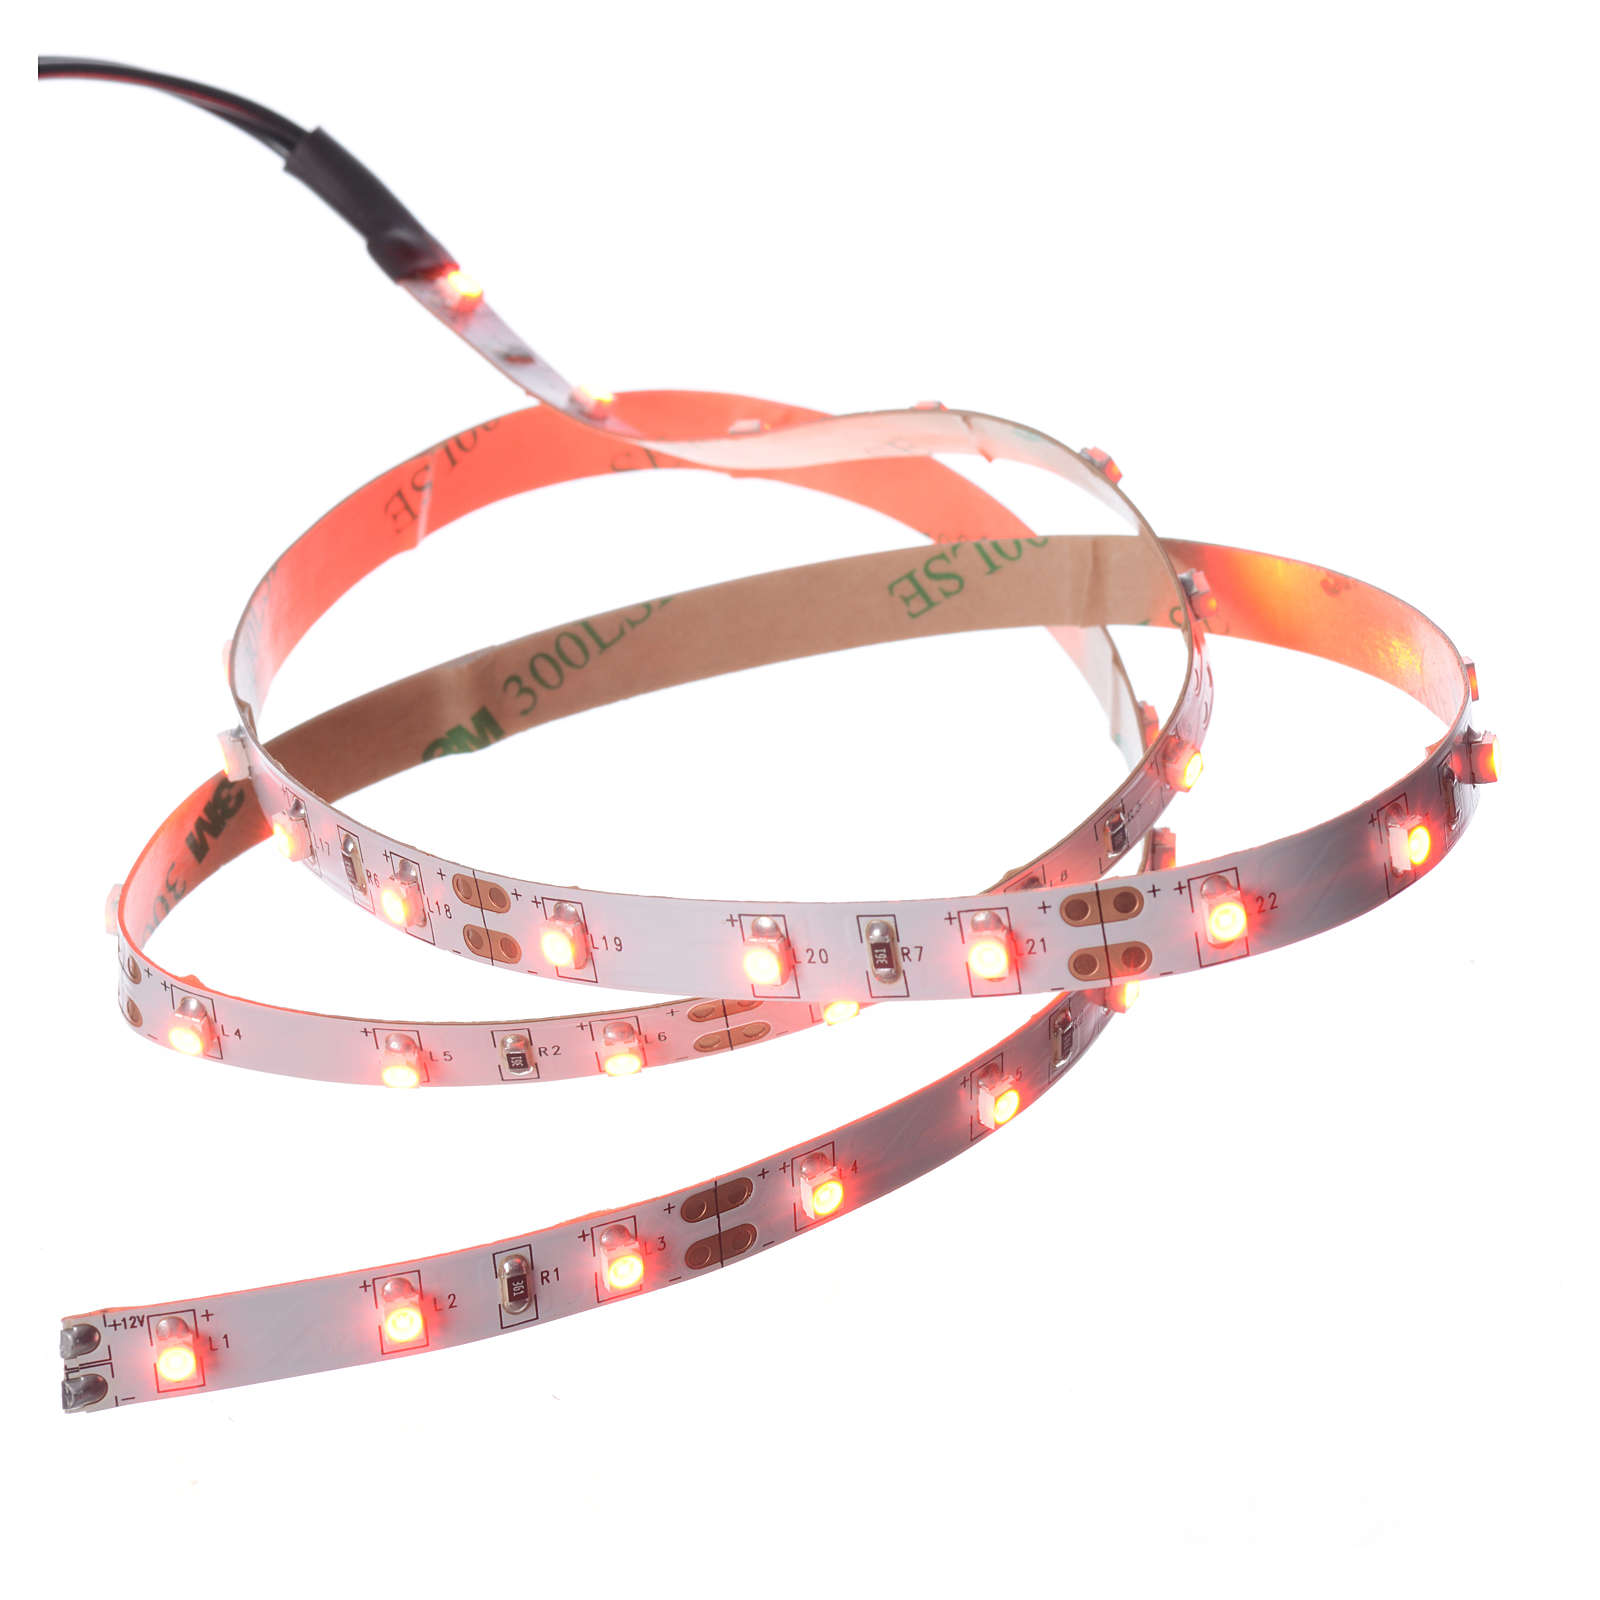 Bande Power 45 leds rouges 0,8x75 cm FrialPower 4